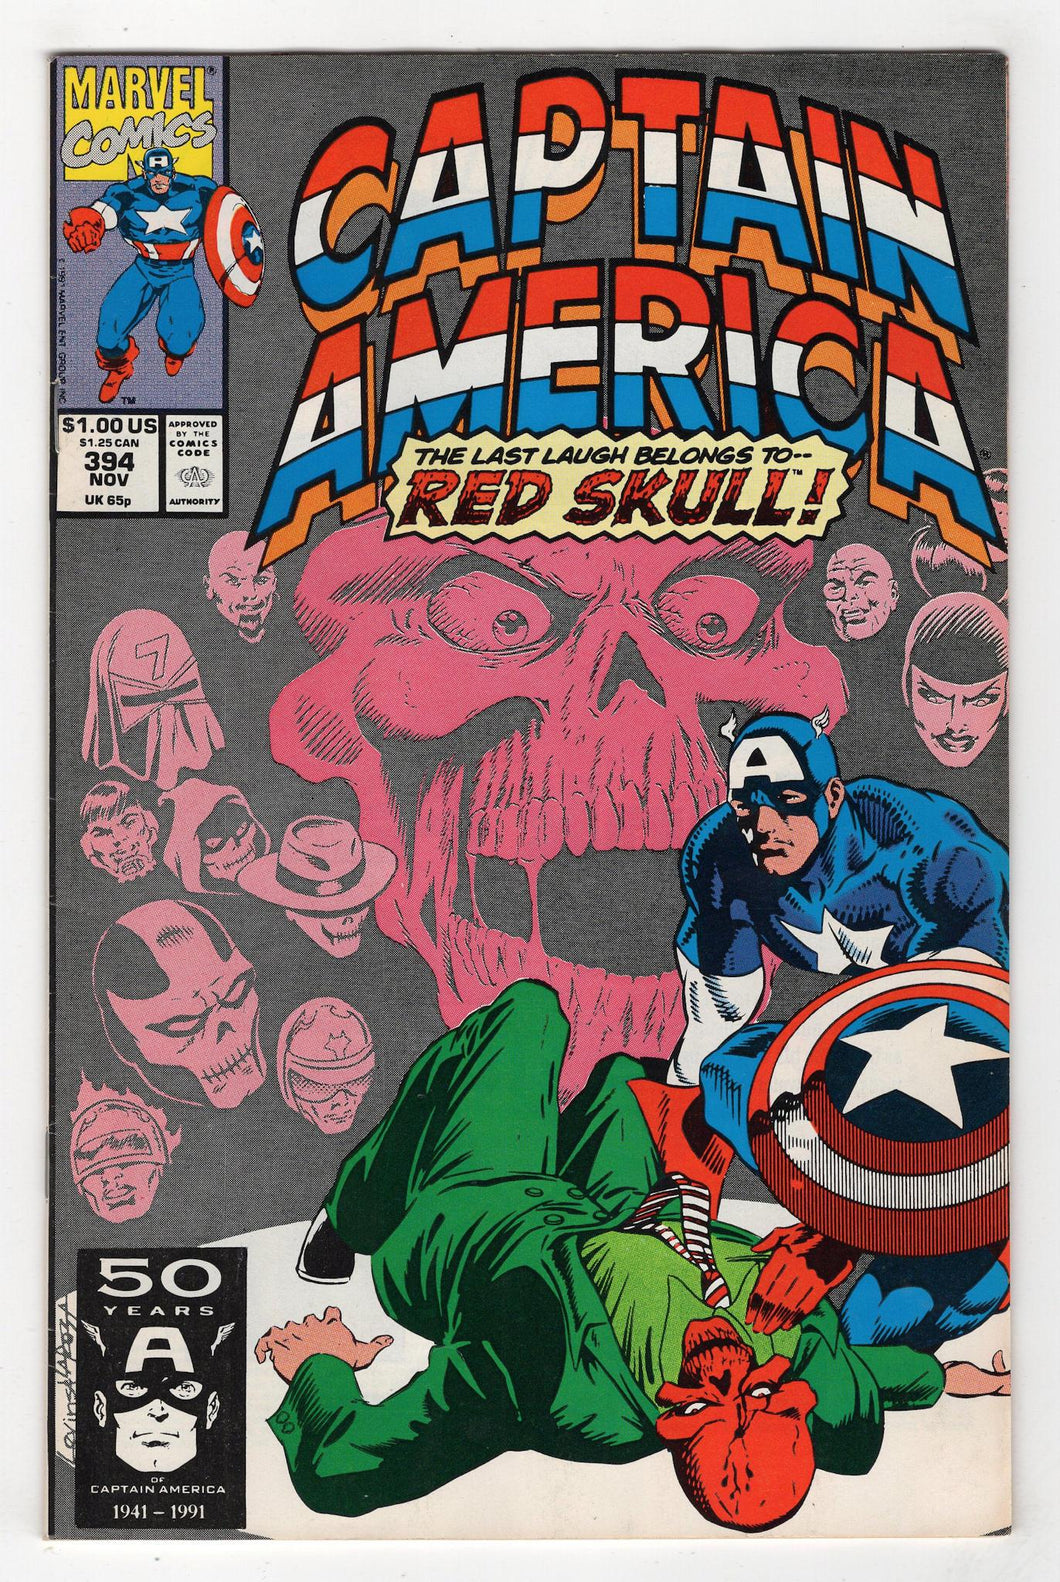 Captain America #394 Cover Front